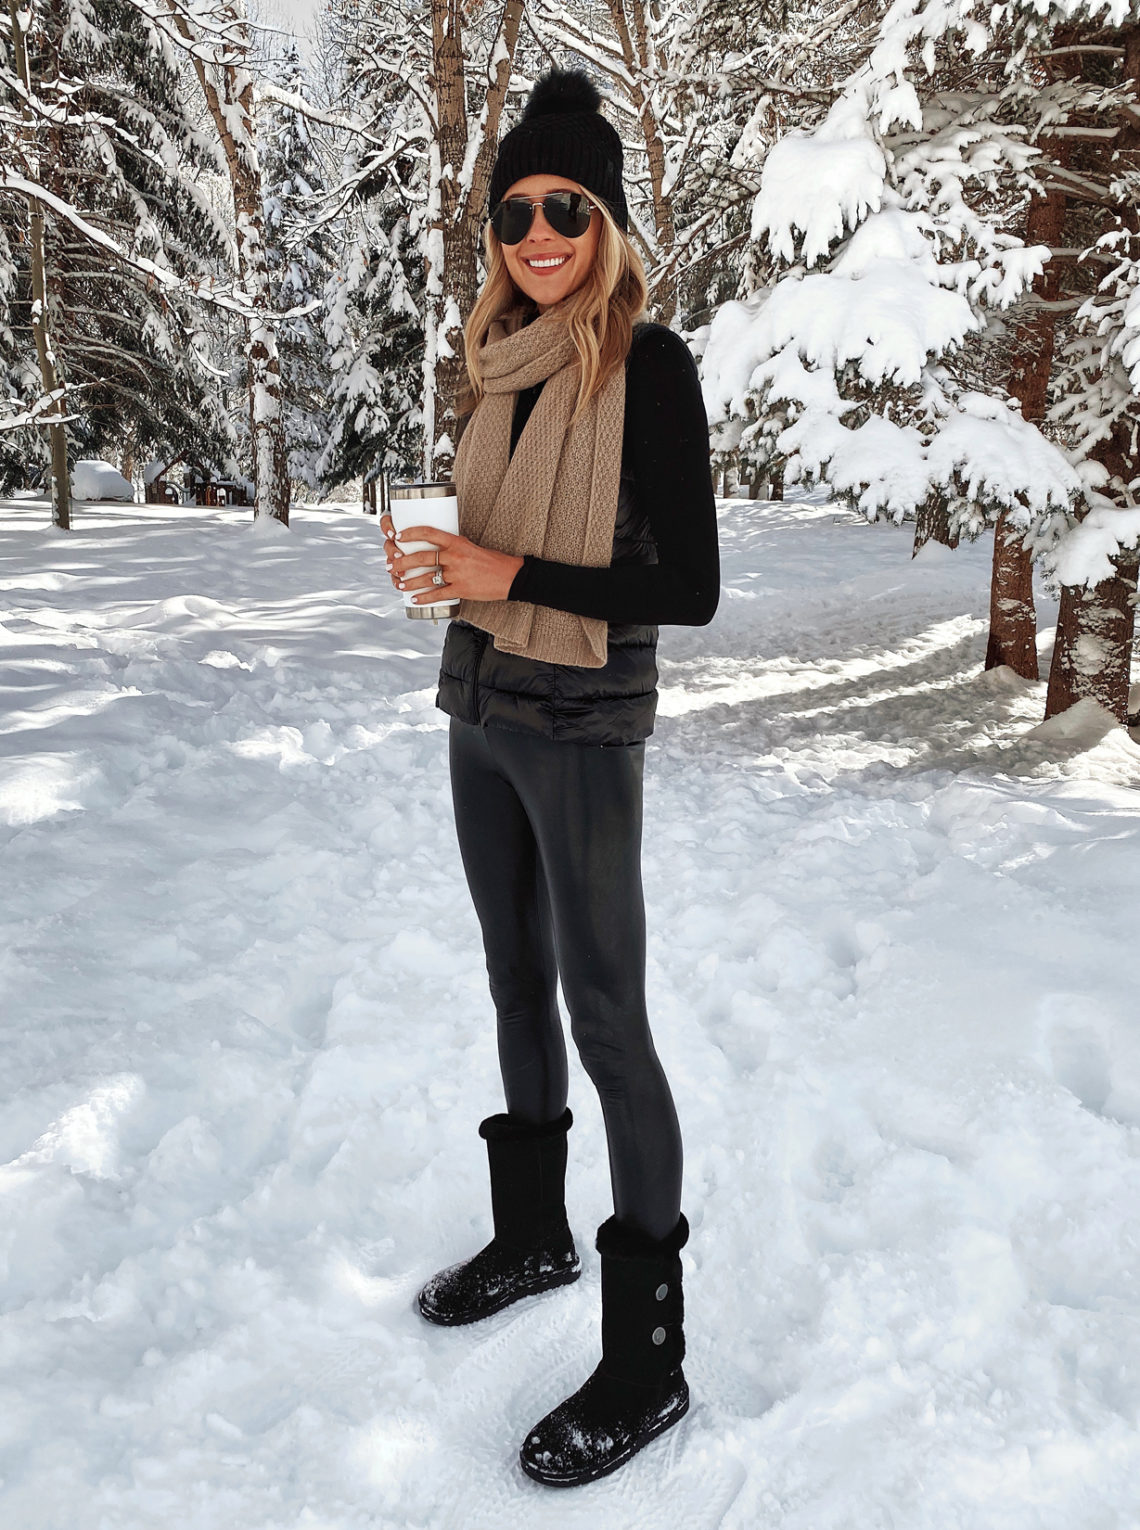 Fashion Jackson Wearing Black Beanie Camel Cashmere Scarf Puffer Vest Black Faux Leather Leggings Black Ugg Boots Winter Ski Trip